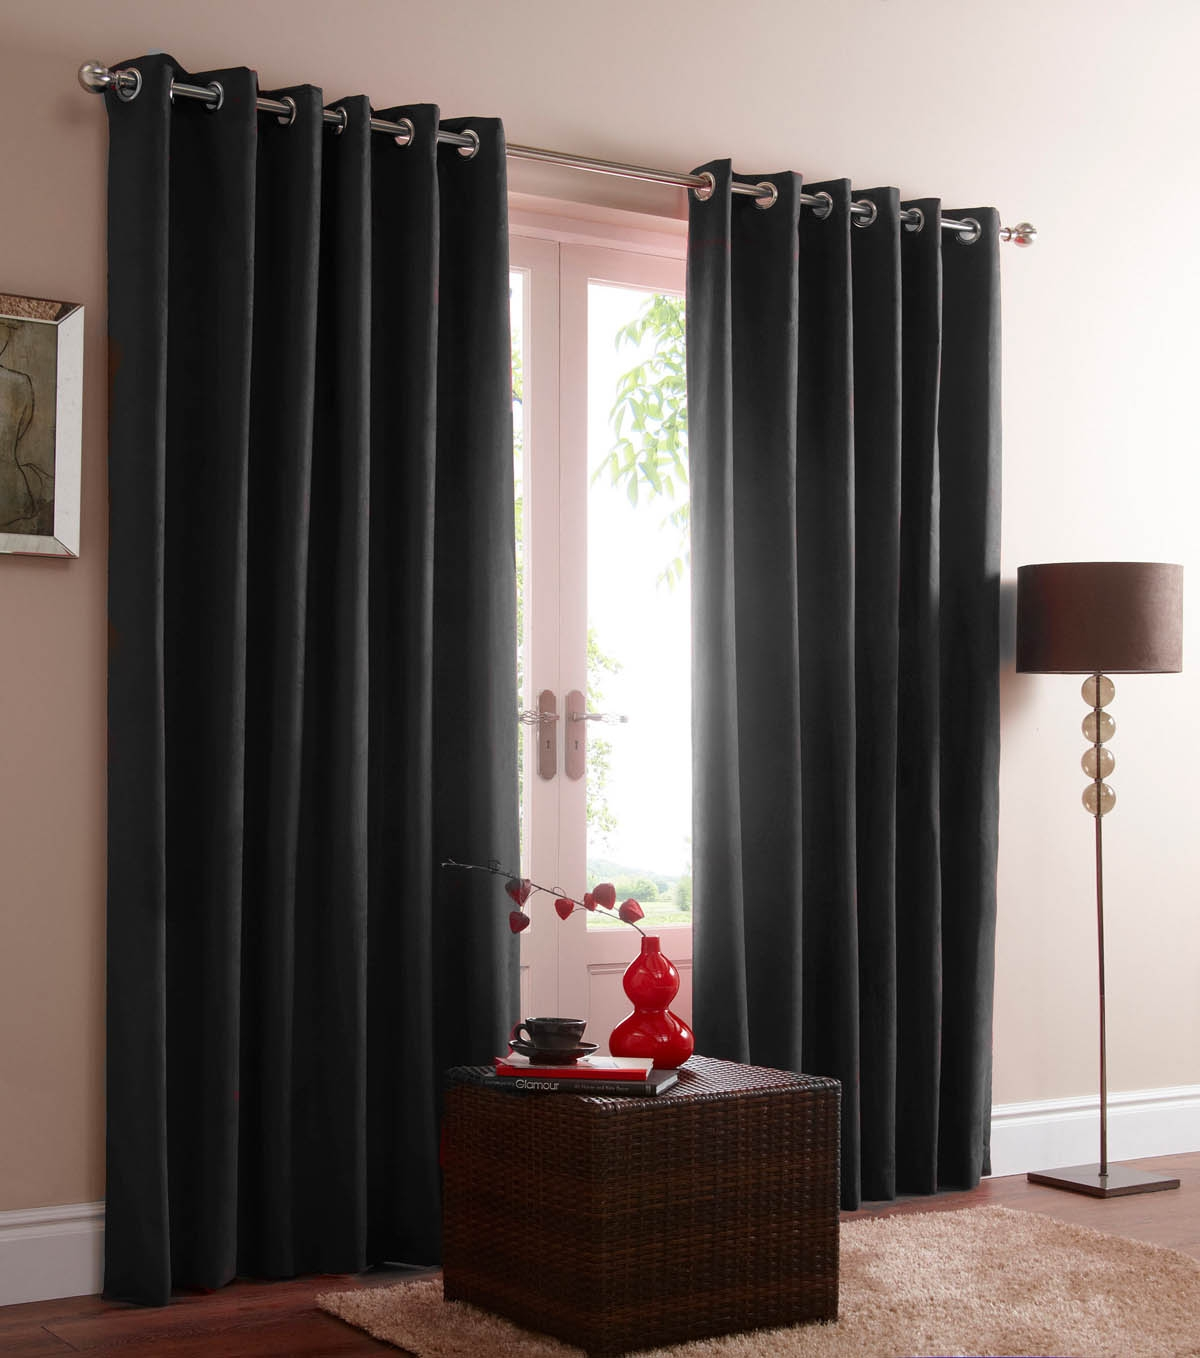 Grey Blackout Curtains Functions And Settings Design Ideas And Decor With Plain White Blackout Curtains (Image 12 of 15)